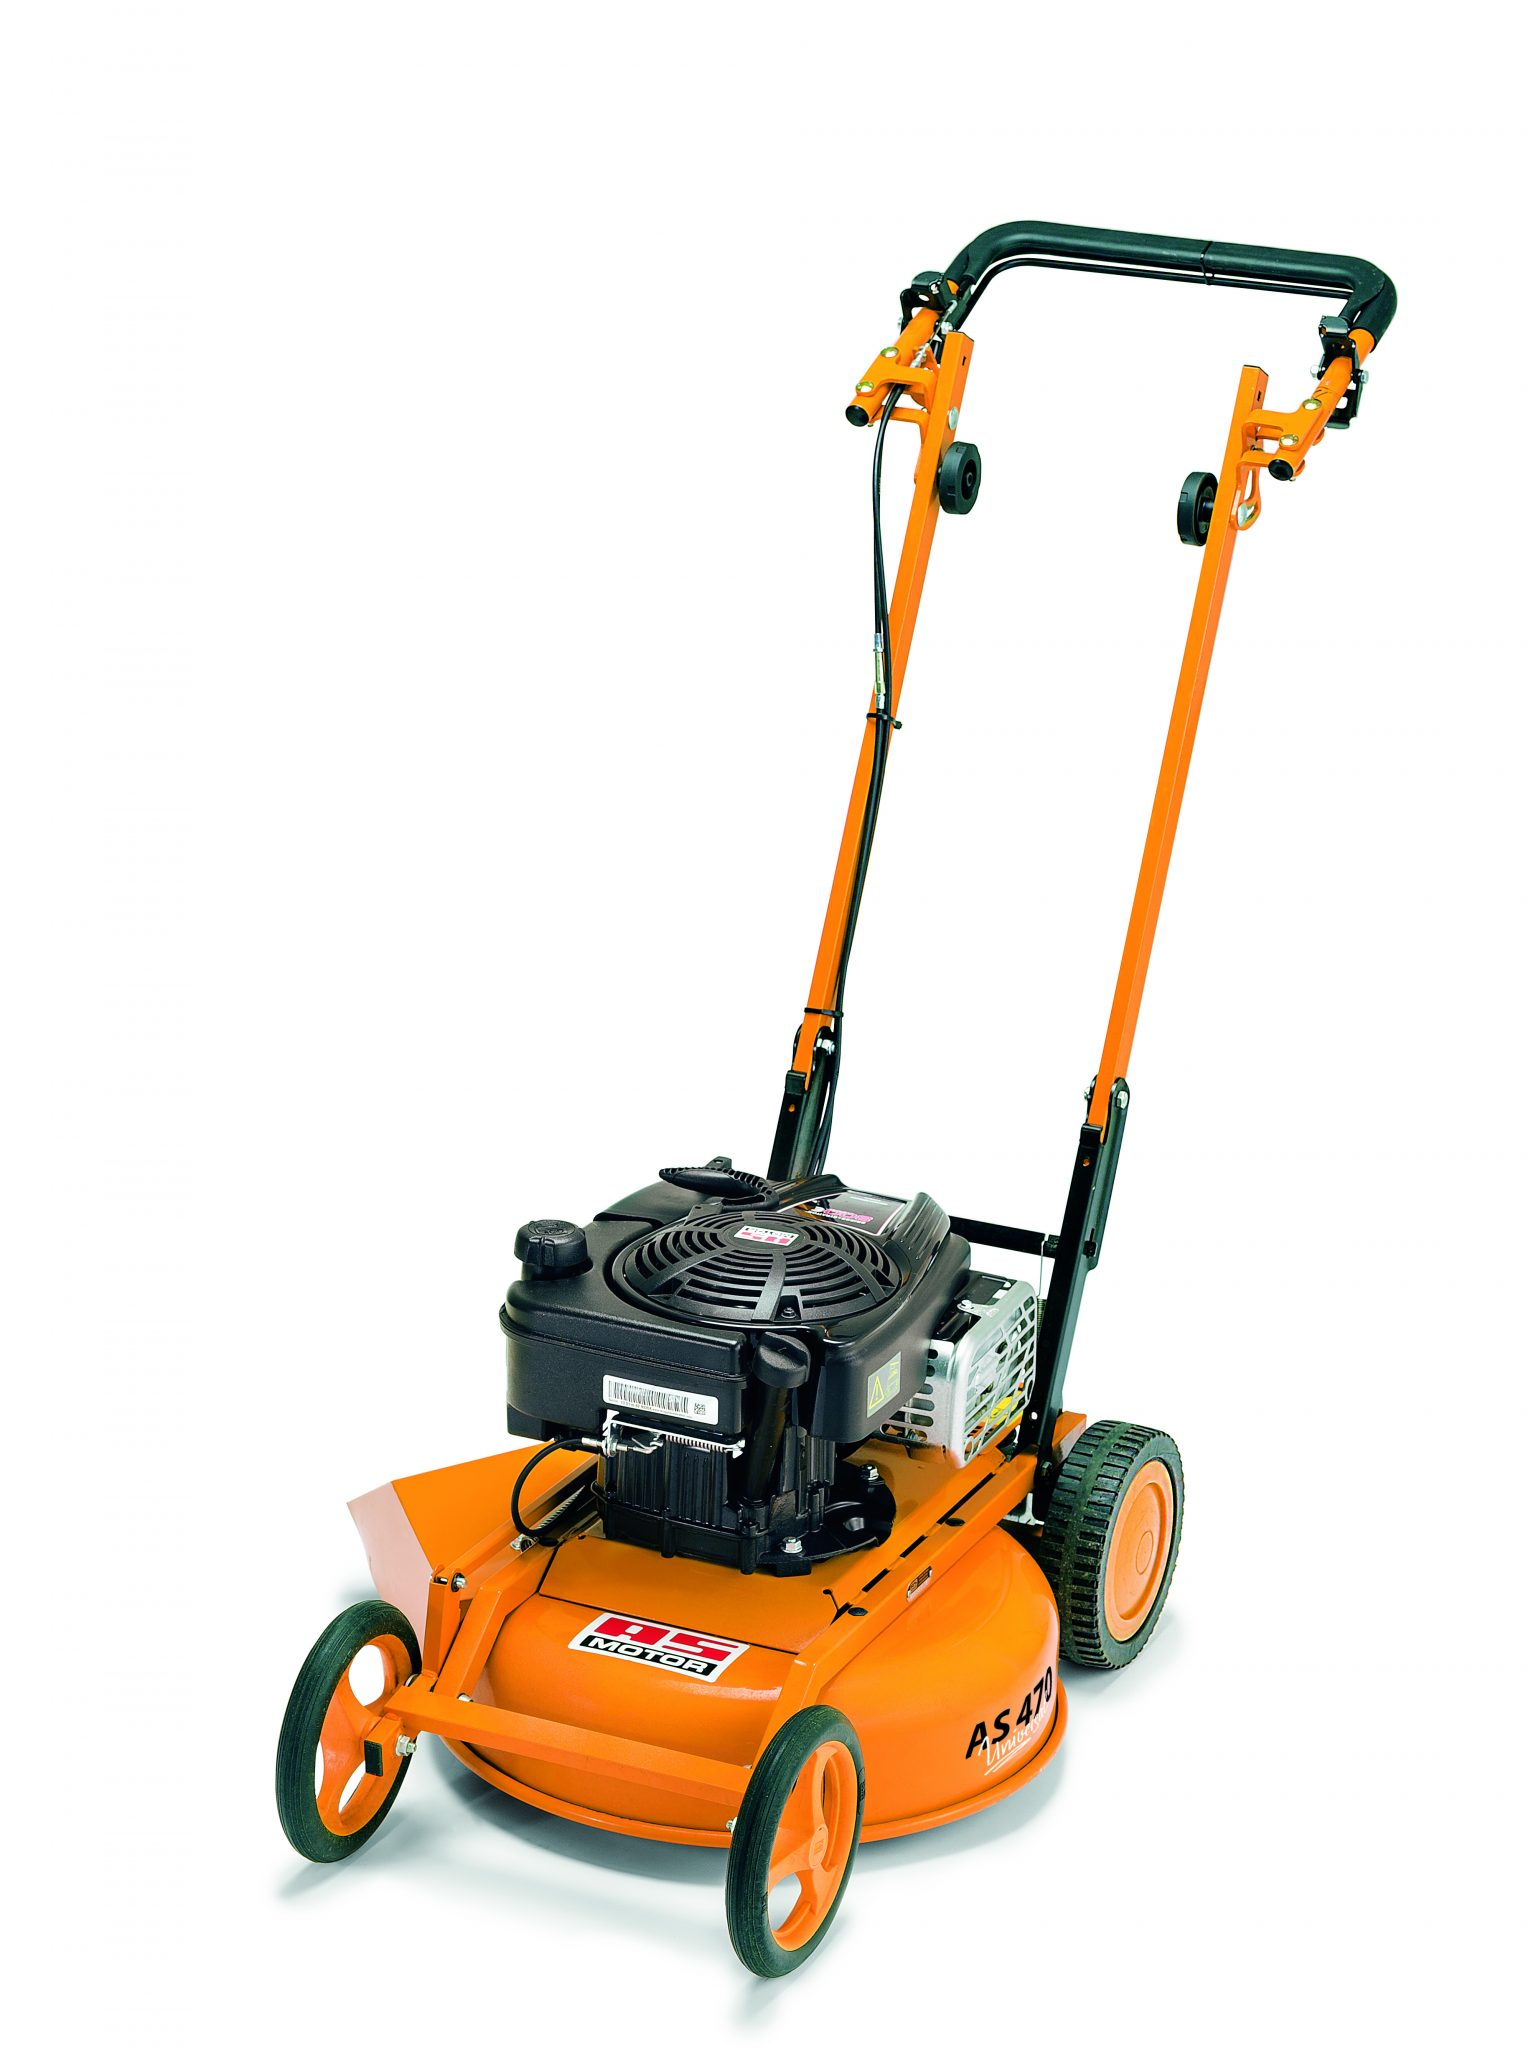 AS Motor 470 Universal 4T Mower Image